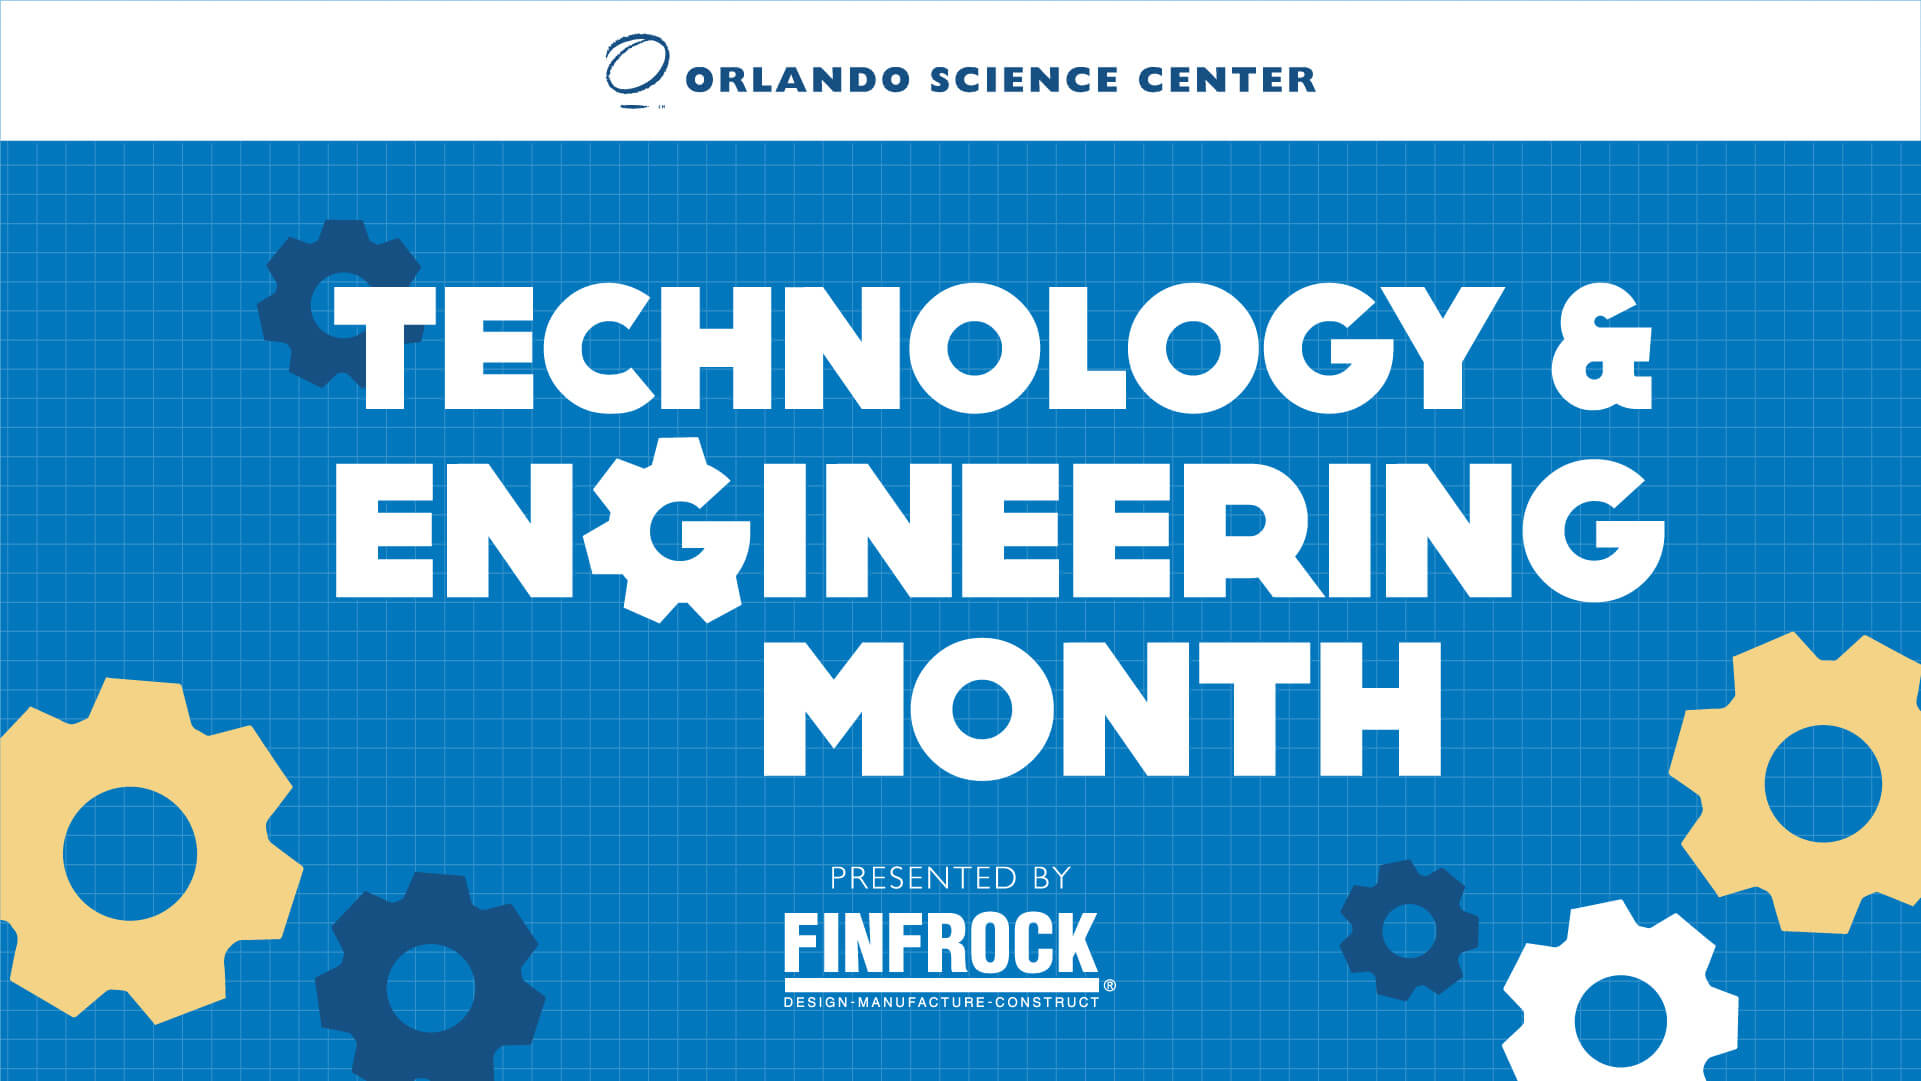 Tech & Engineering Month at Orlando Science Center presented by Finfrock